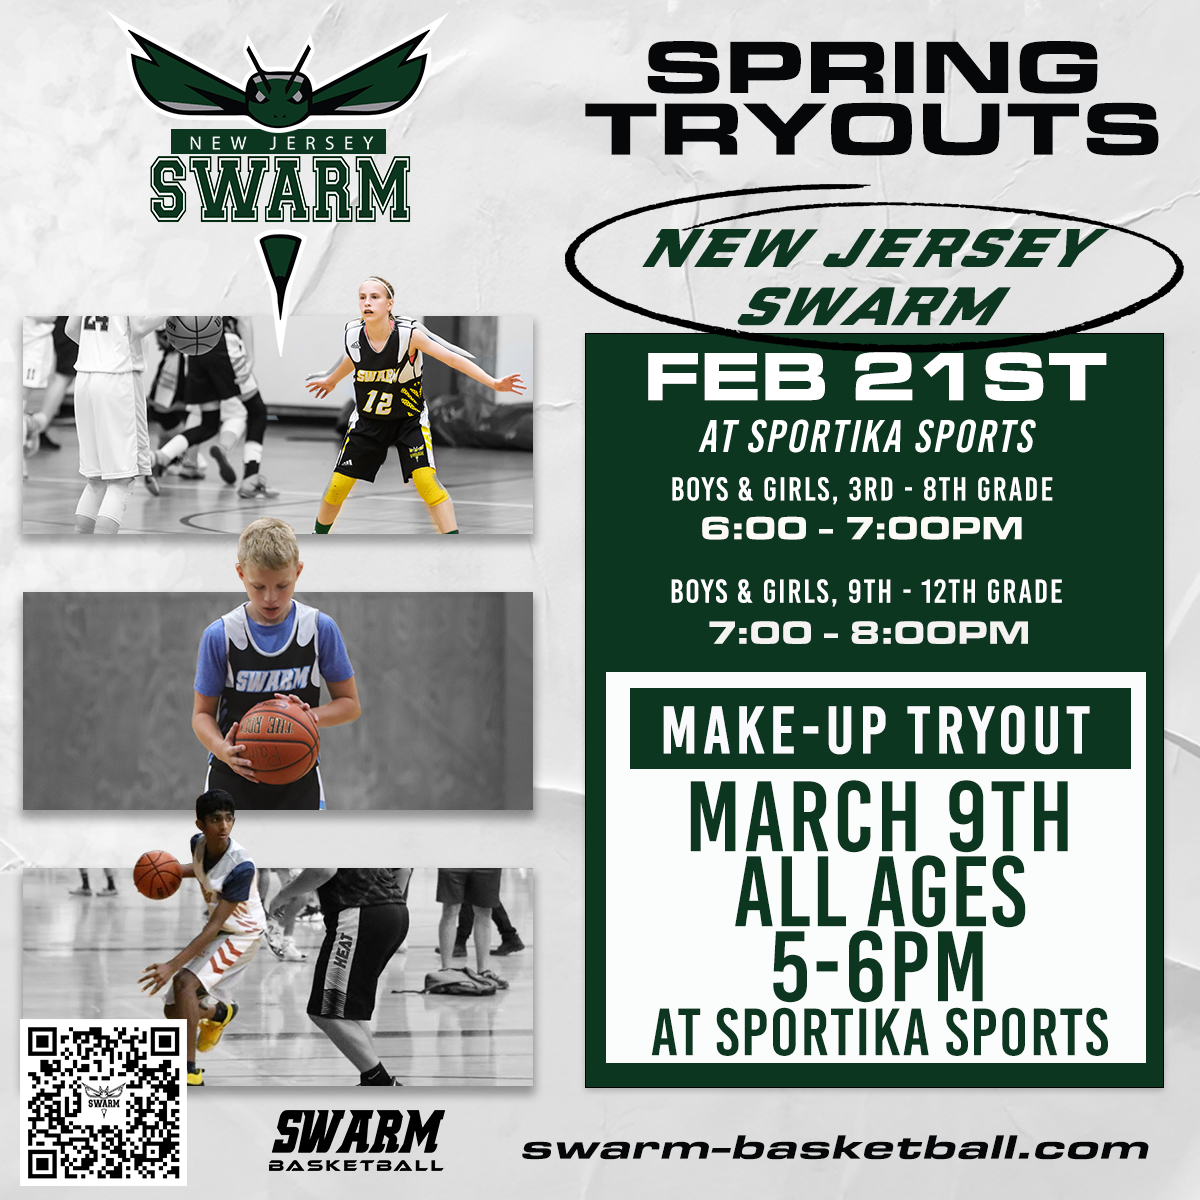 NEWSpring21Tryouts_NewJersey